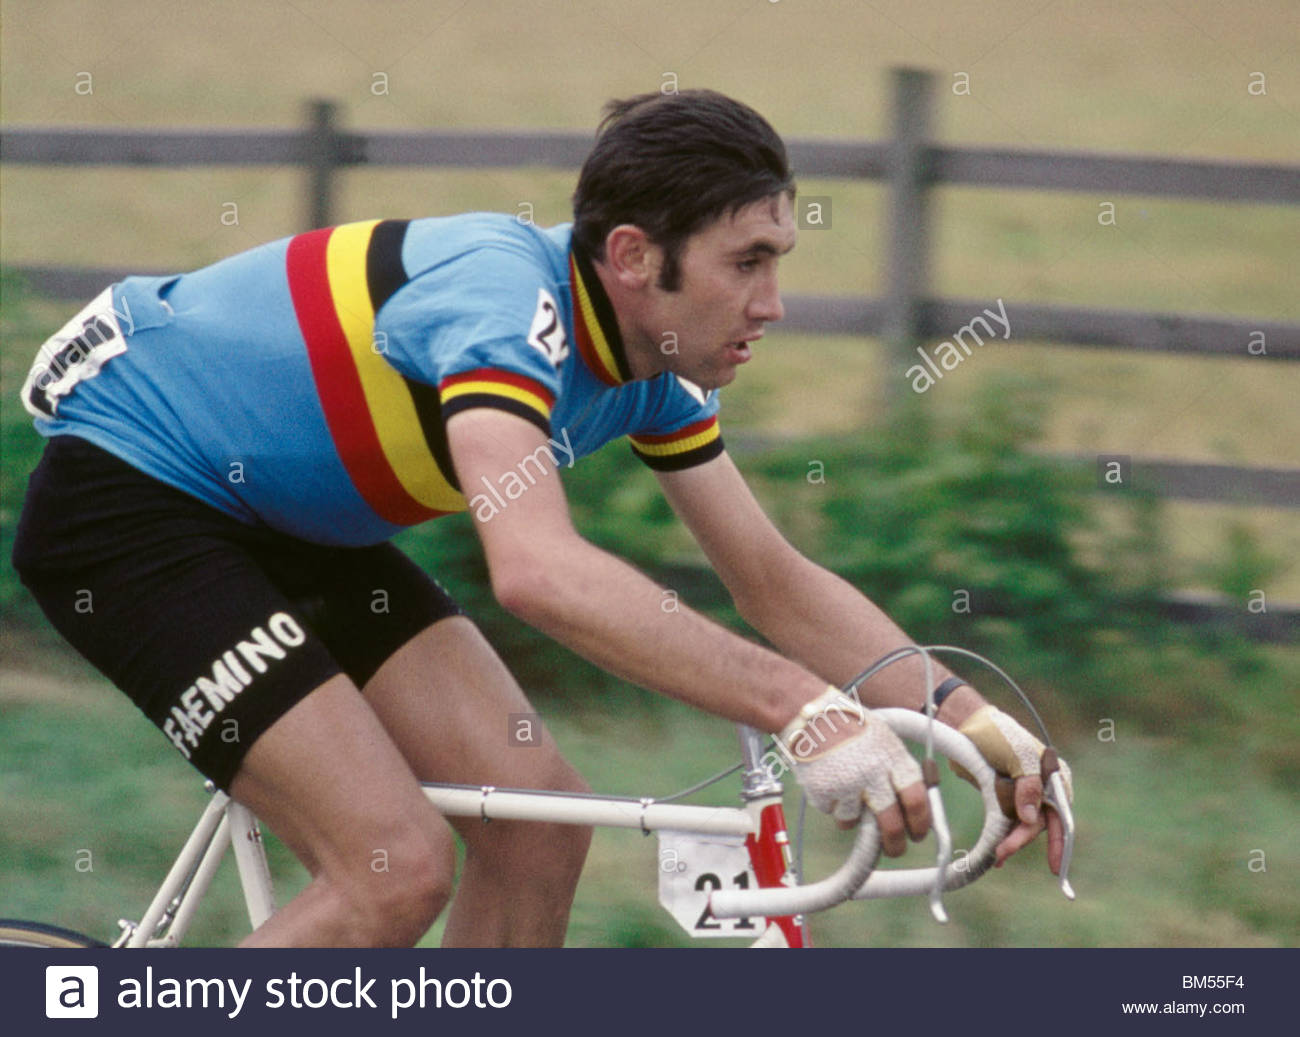 Legendary sportsman Eddy Merckx riding for the Belgian national team in the cycling World Championships – 1970s Stock Photo